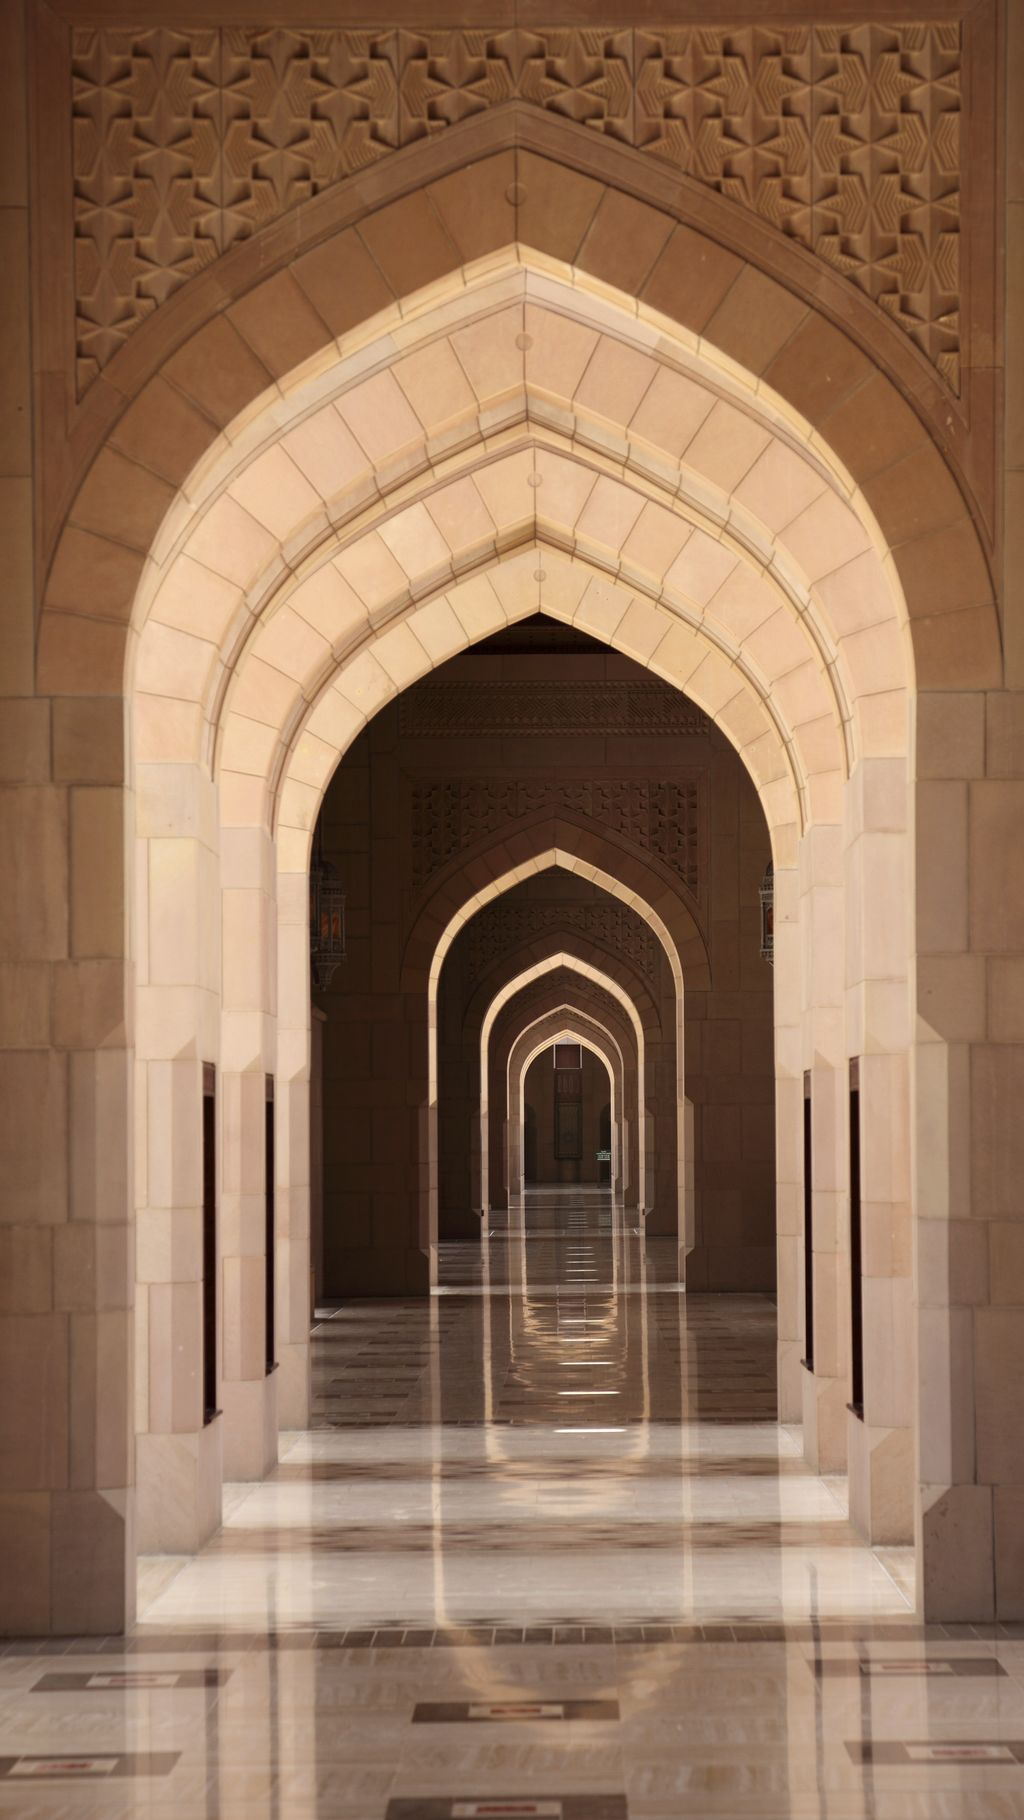 Archway in the Sultan Qaboos Grand Mosque, Muscat Oman